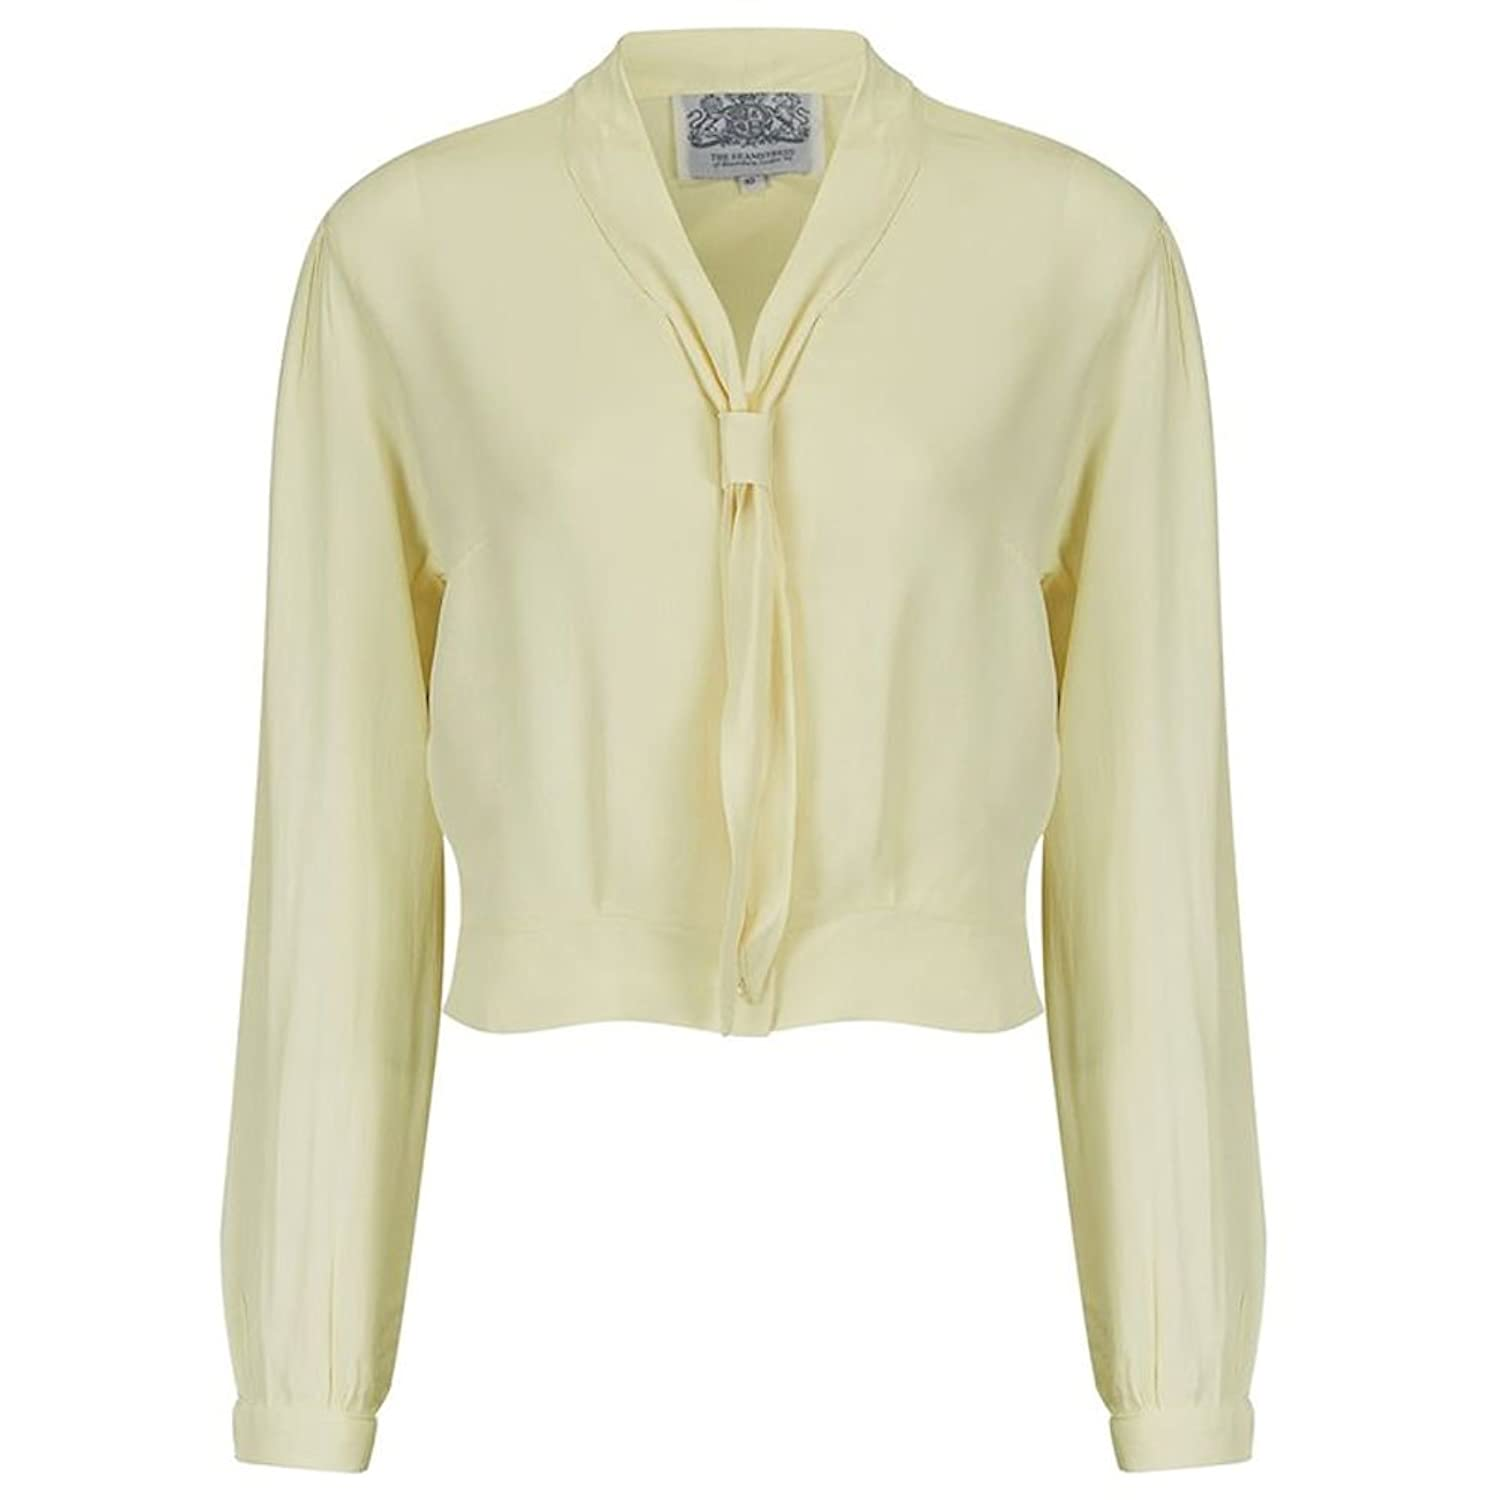 1940s Blouses and Tops Seamstress Of Bloomsbury 1940s Cream Sailor Inspired Long Sleeve Bonnie Blouse $44.46 AT vintagedancer.com